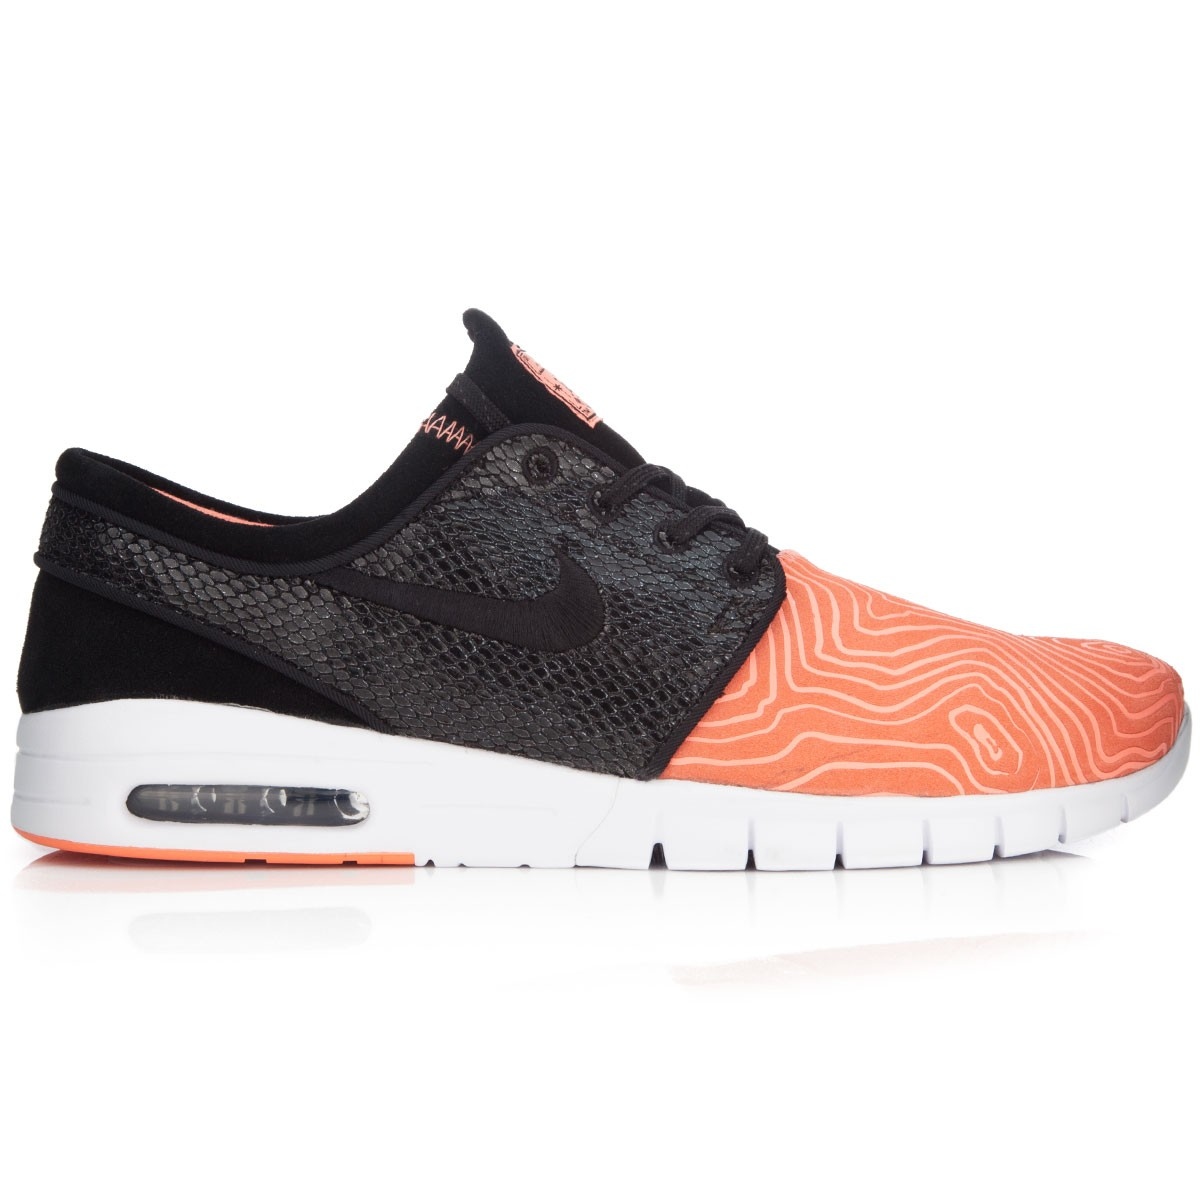 Nike sb stefan janoski max suede shoes for Fish shoes nike